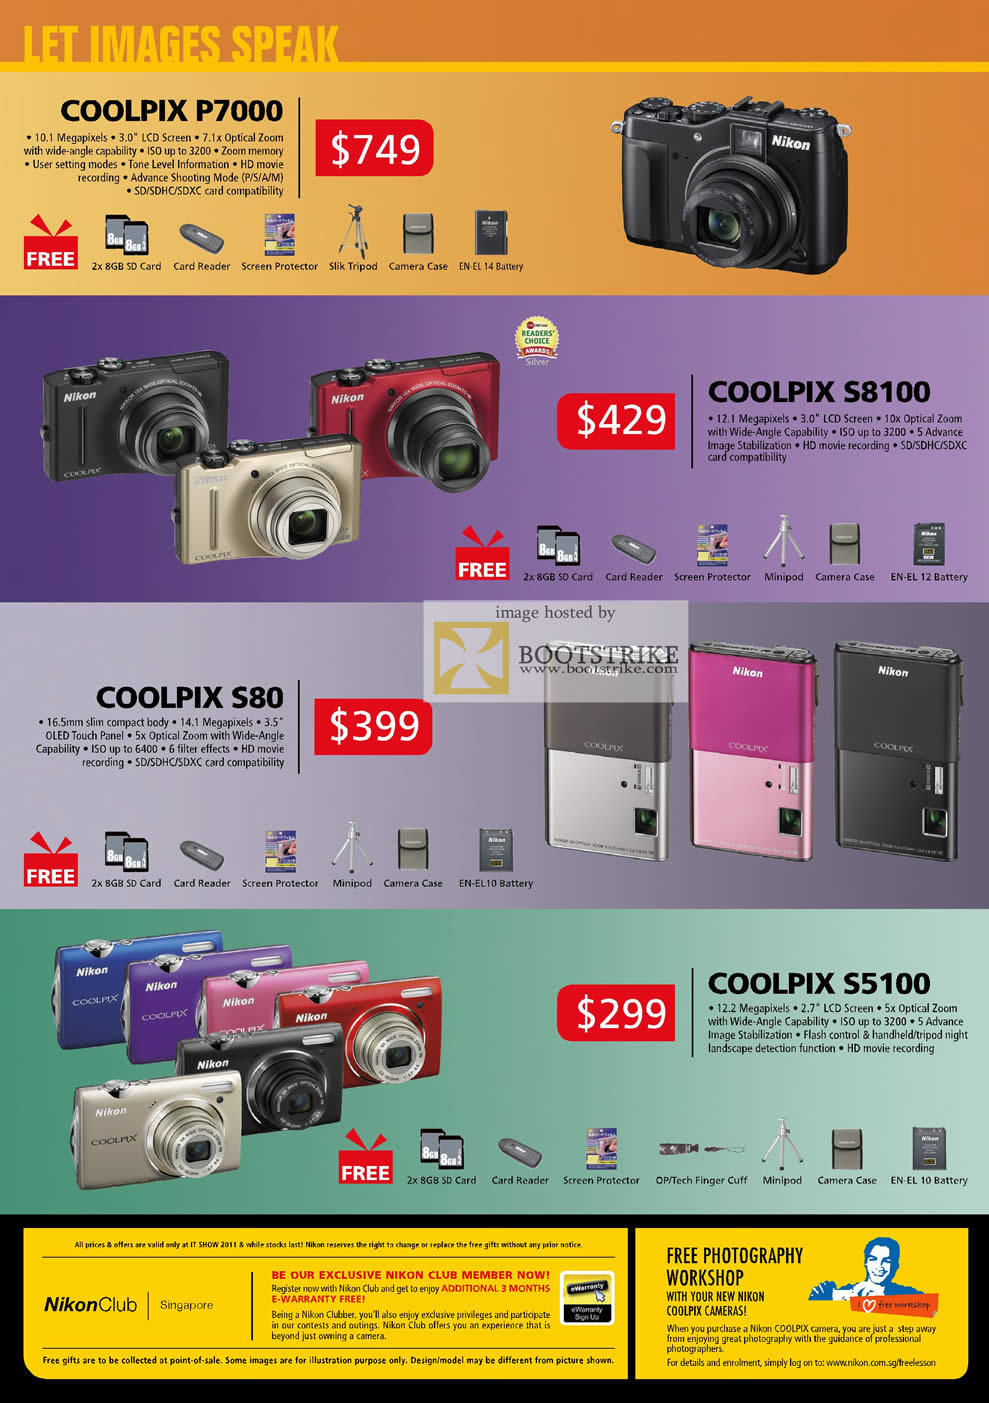 IT Show 2011 price list image brochure of Nikon Digital Cameras Coolpix P7000 S8100 S80 S5100